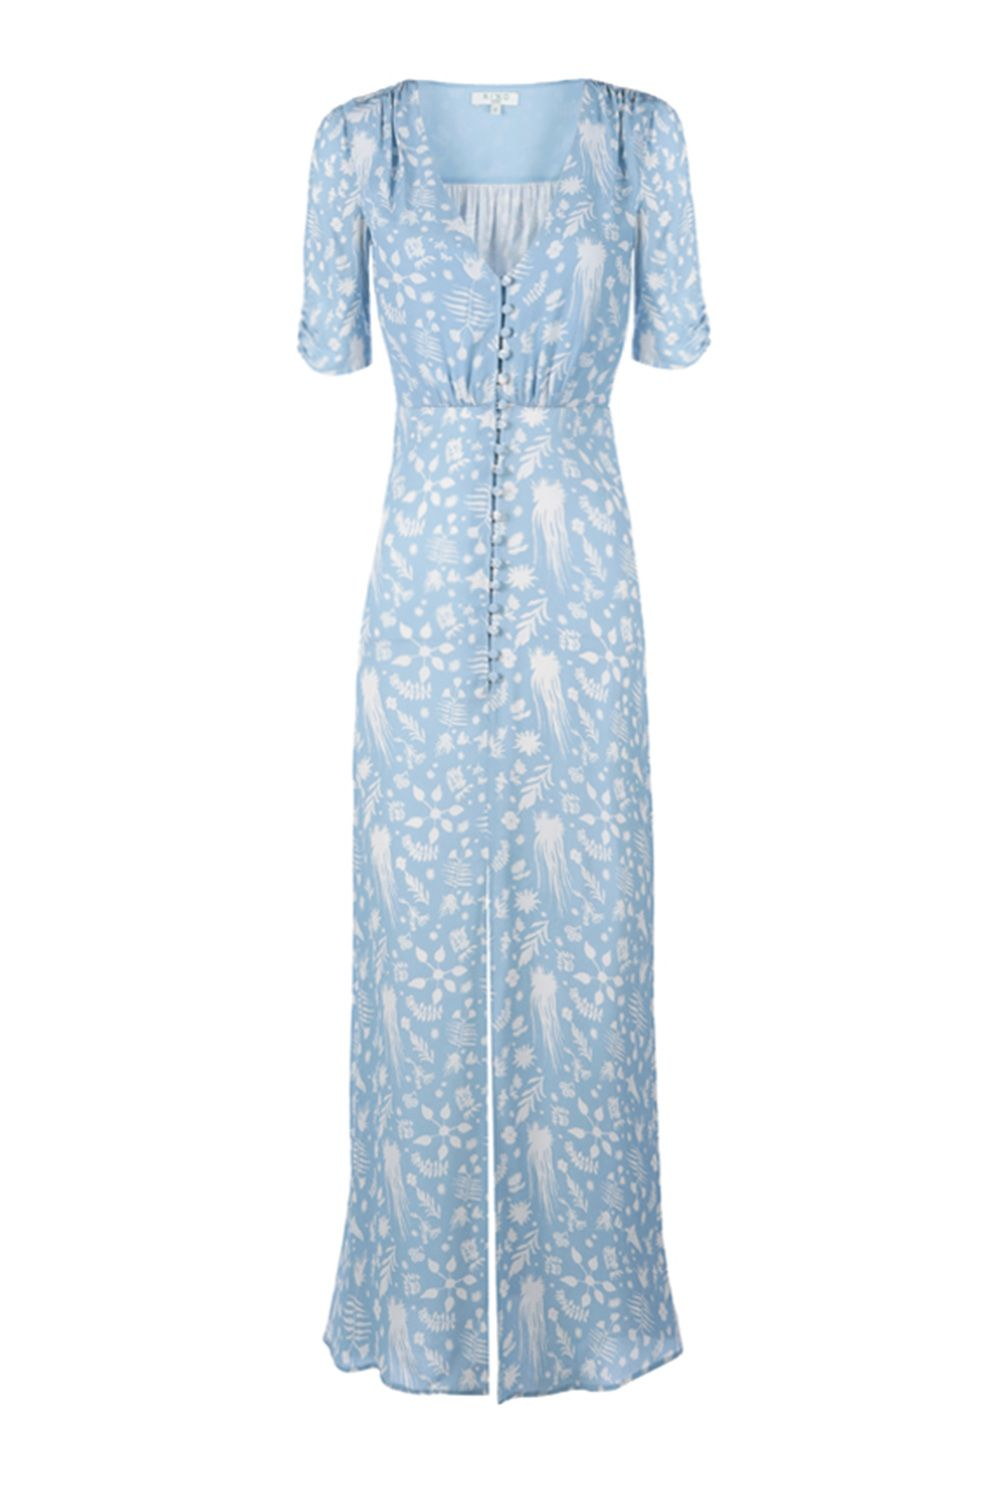 Maxi dresses for wedding guest  Wedding Guest Dresses Youull Actually Want To Wear Again And Again